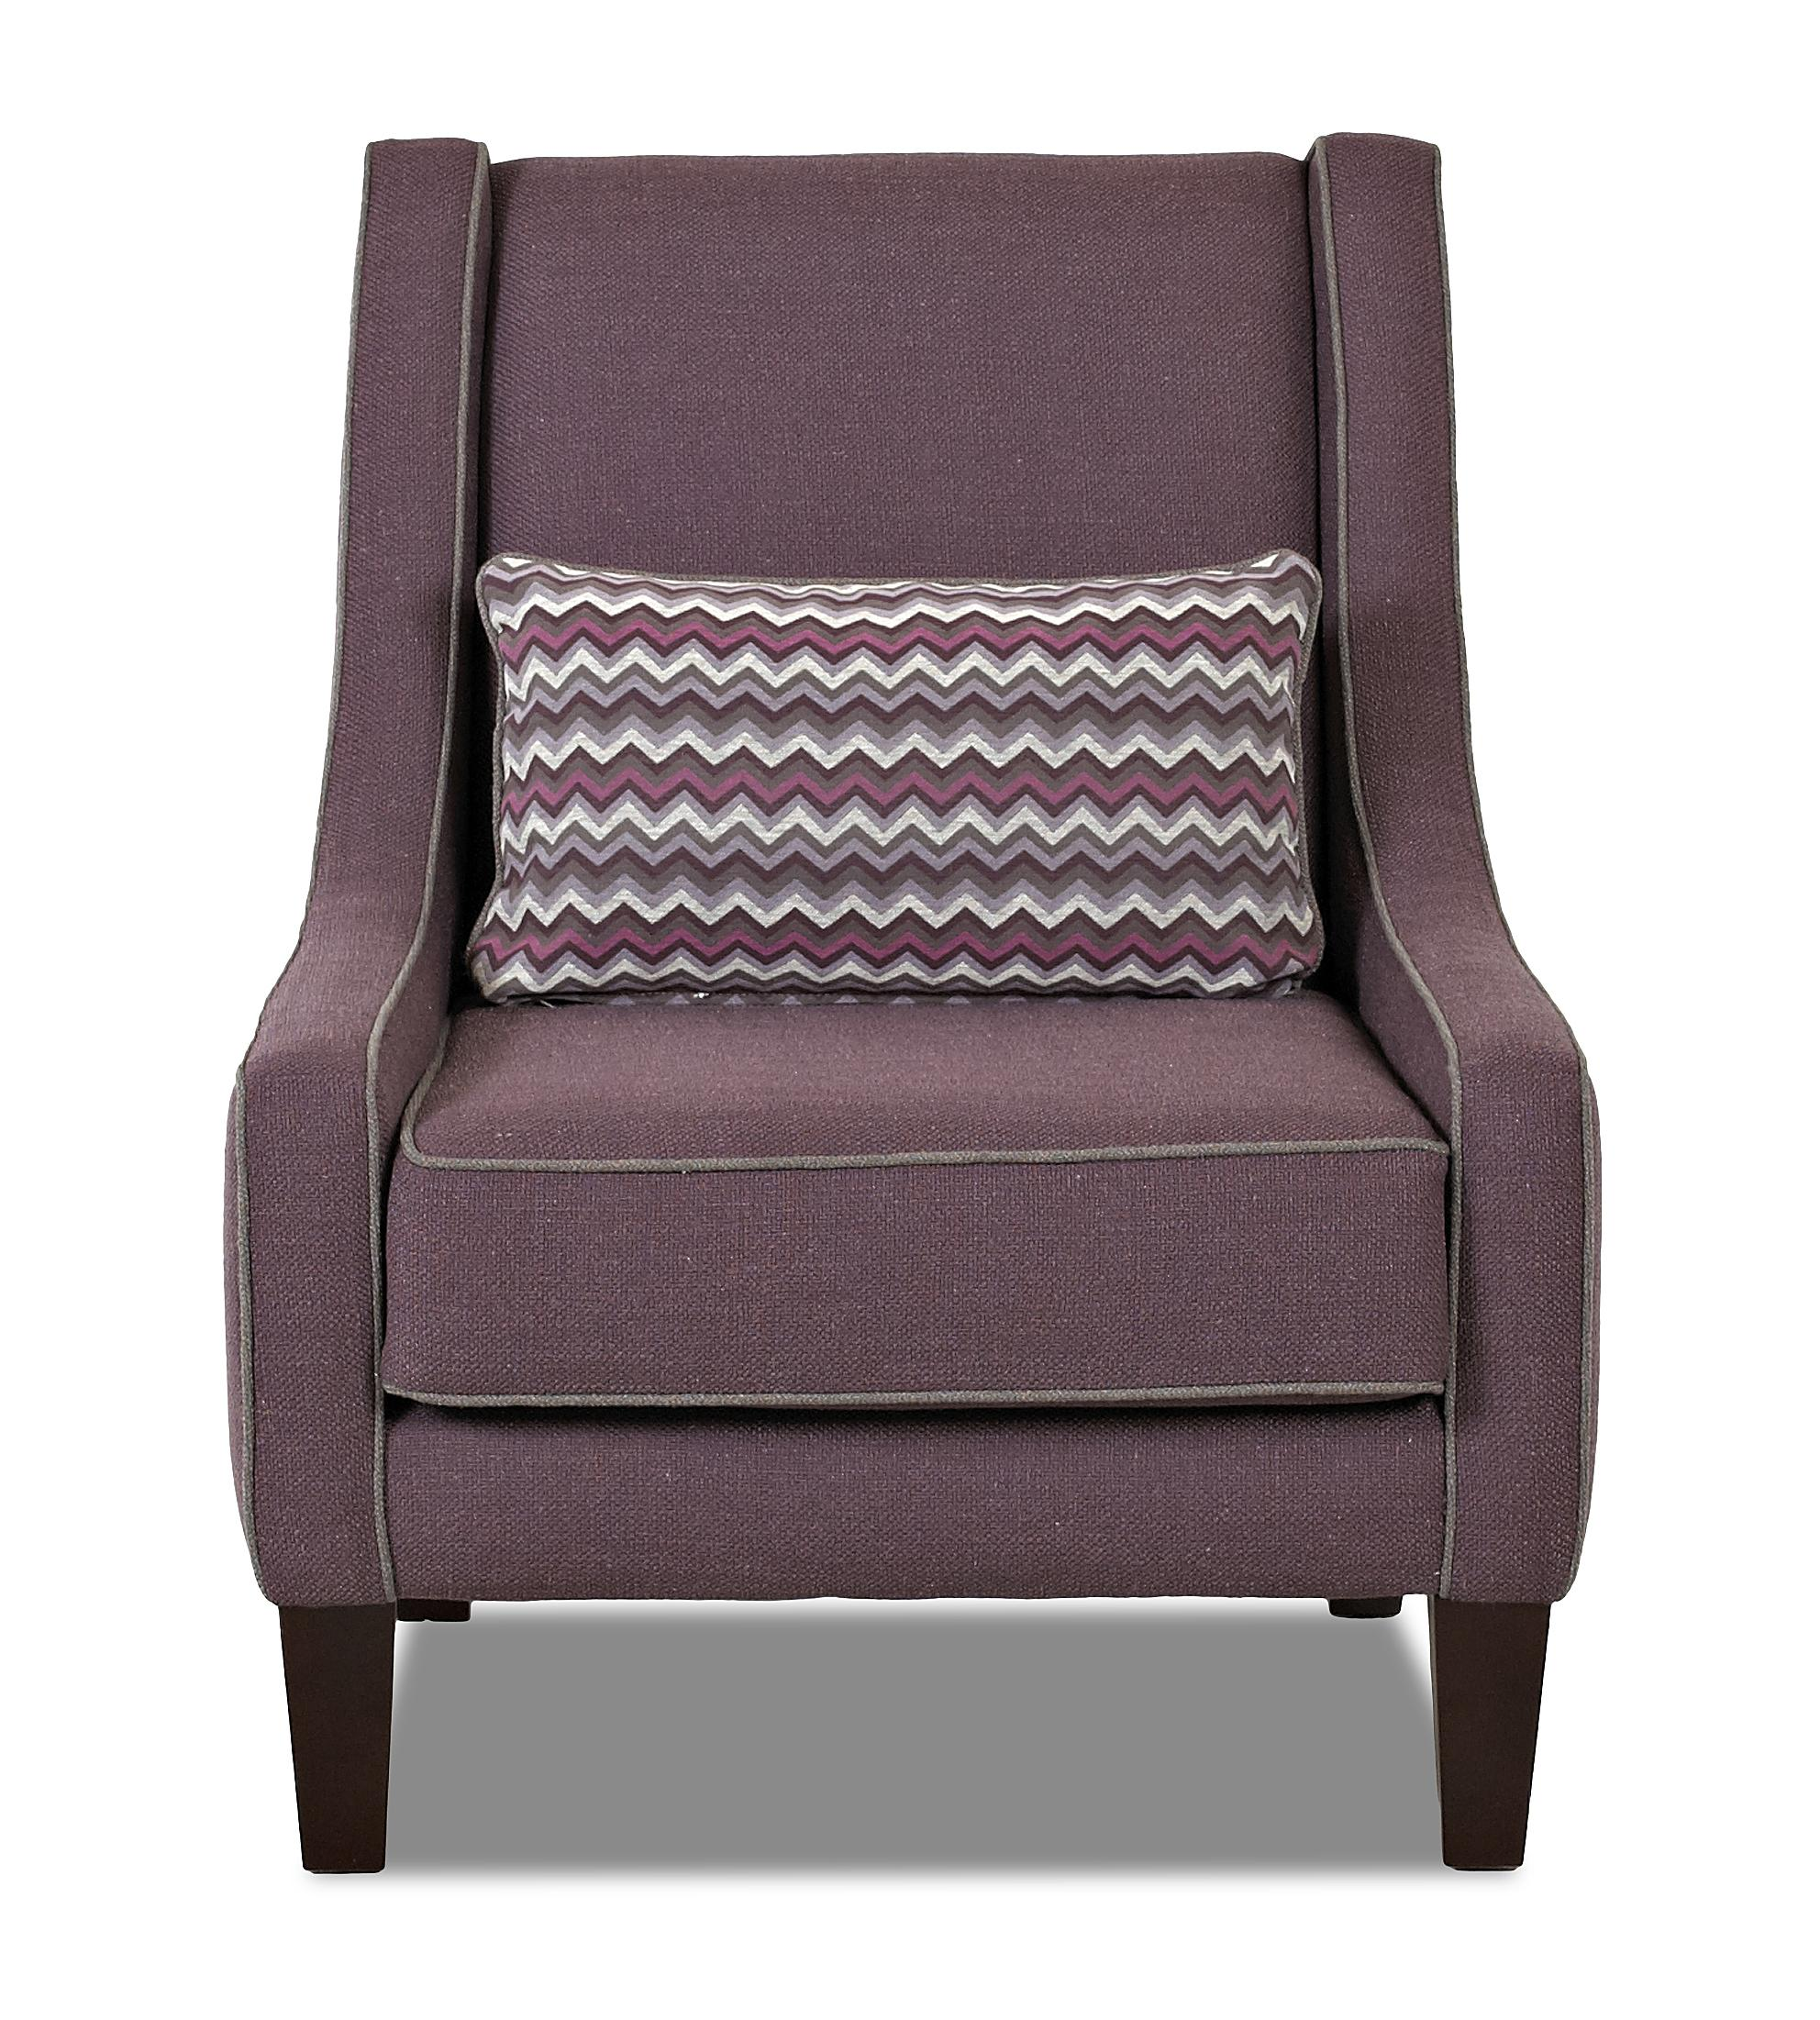 Klaussner Chairs And Accents Matrix Accent Chair   Item Number: 11500WP C